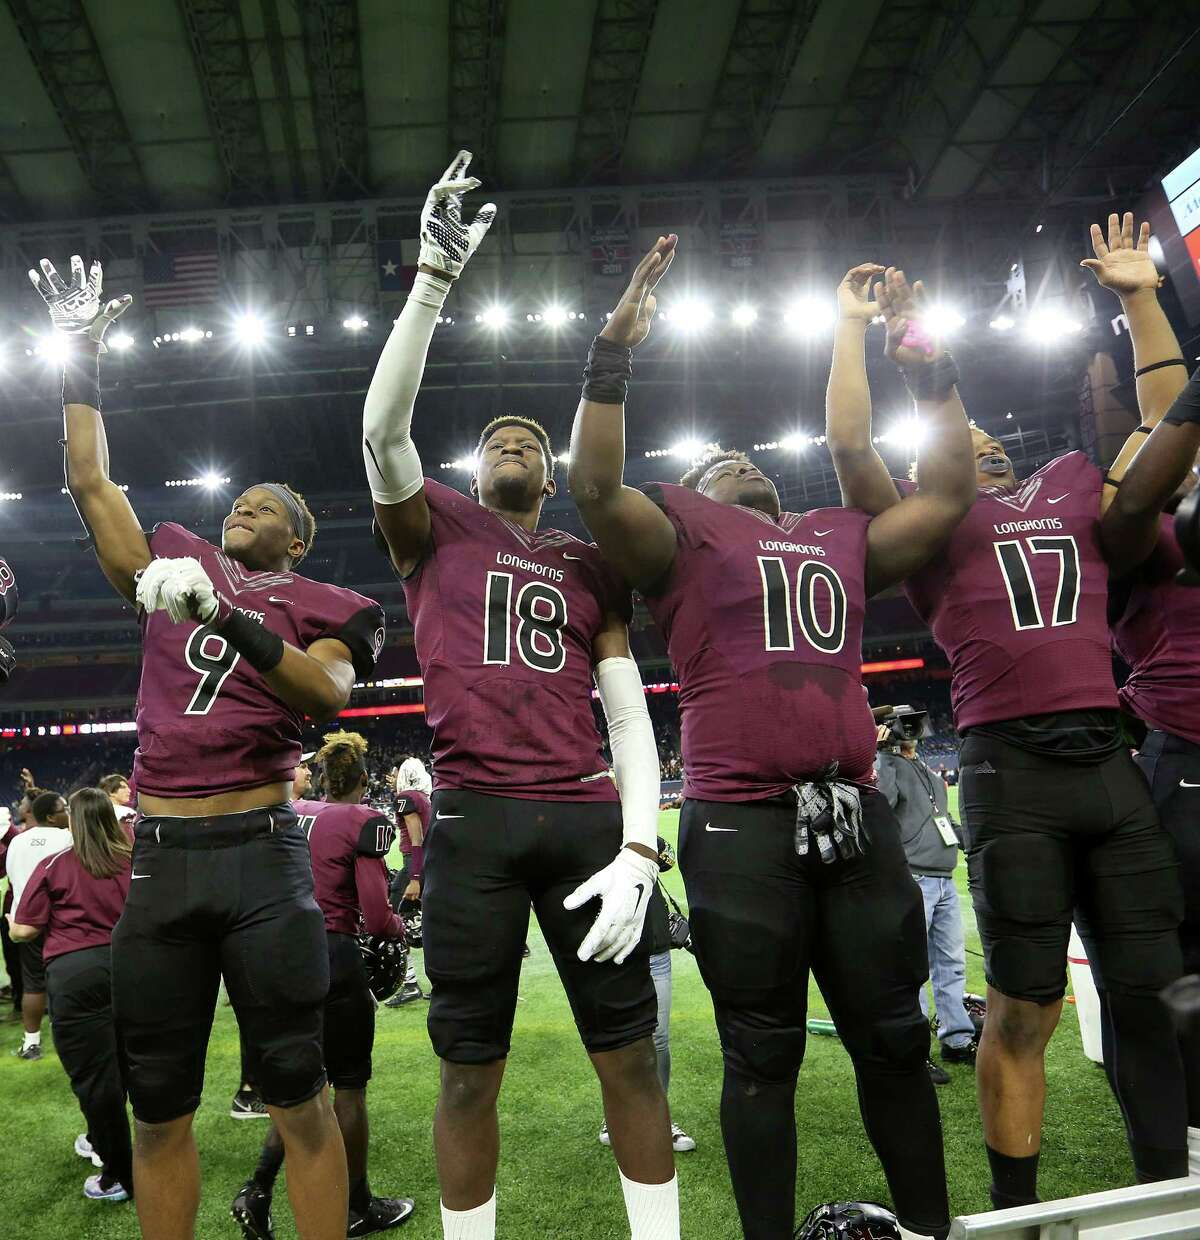 Class 5A Division I: George Ranch 56, Lake Ridge 0 Members of George Ranch's football team celebrates their 56-0 victory over Mansfield Lake Ridge on Friday, Dec. 18, 2015, in Houston. Elizabeth Conley / Houston Chronicle )